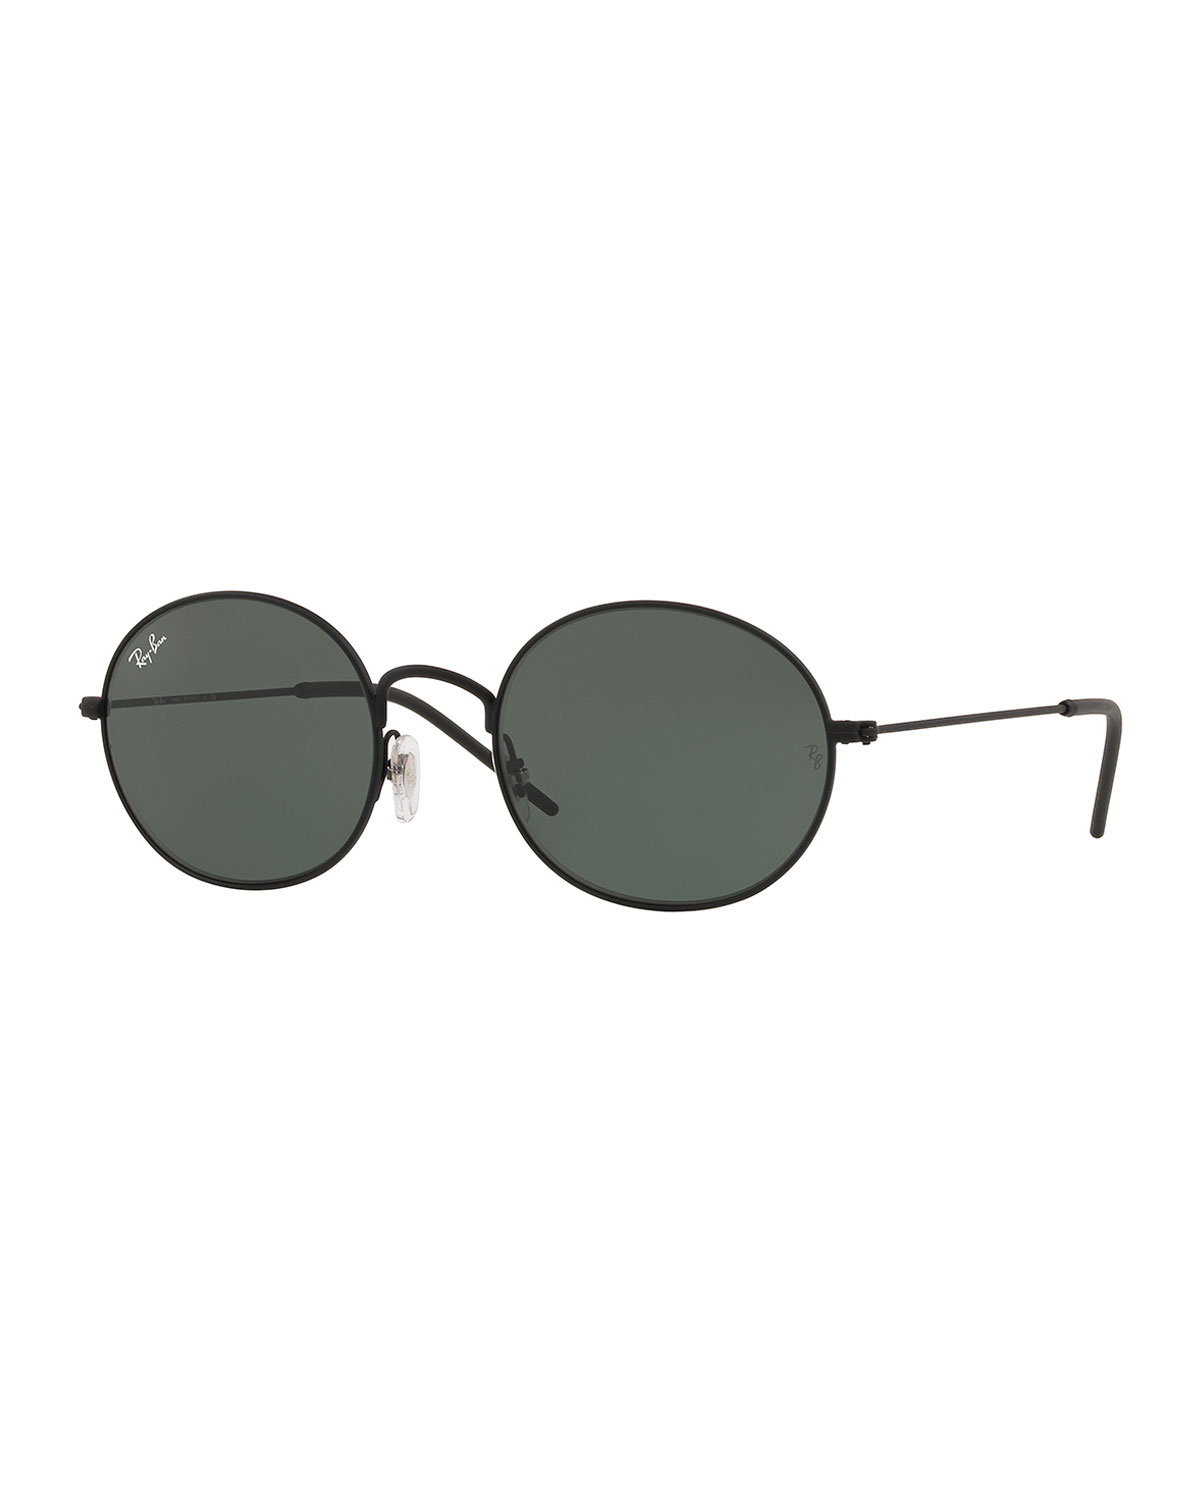 ffeadef17a Ray-Ban Men s RB3594 Round Sunglasses